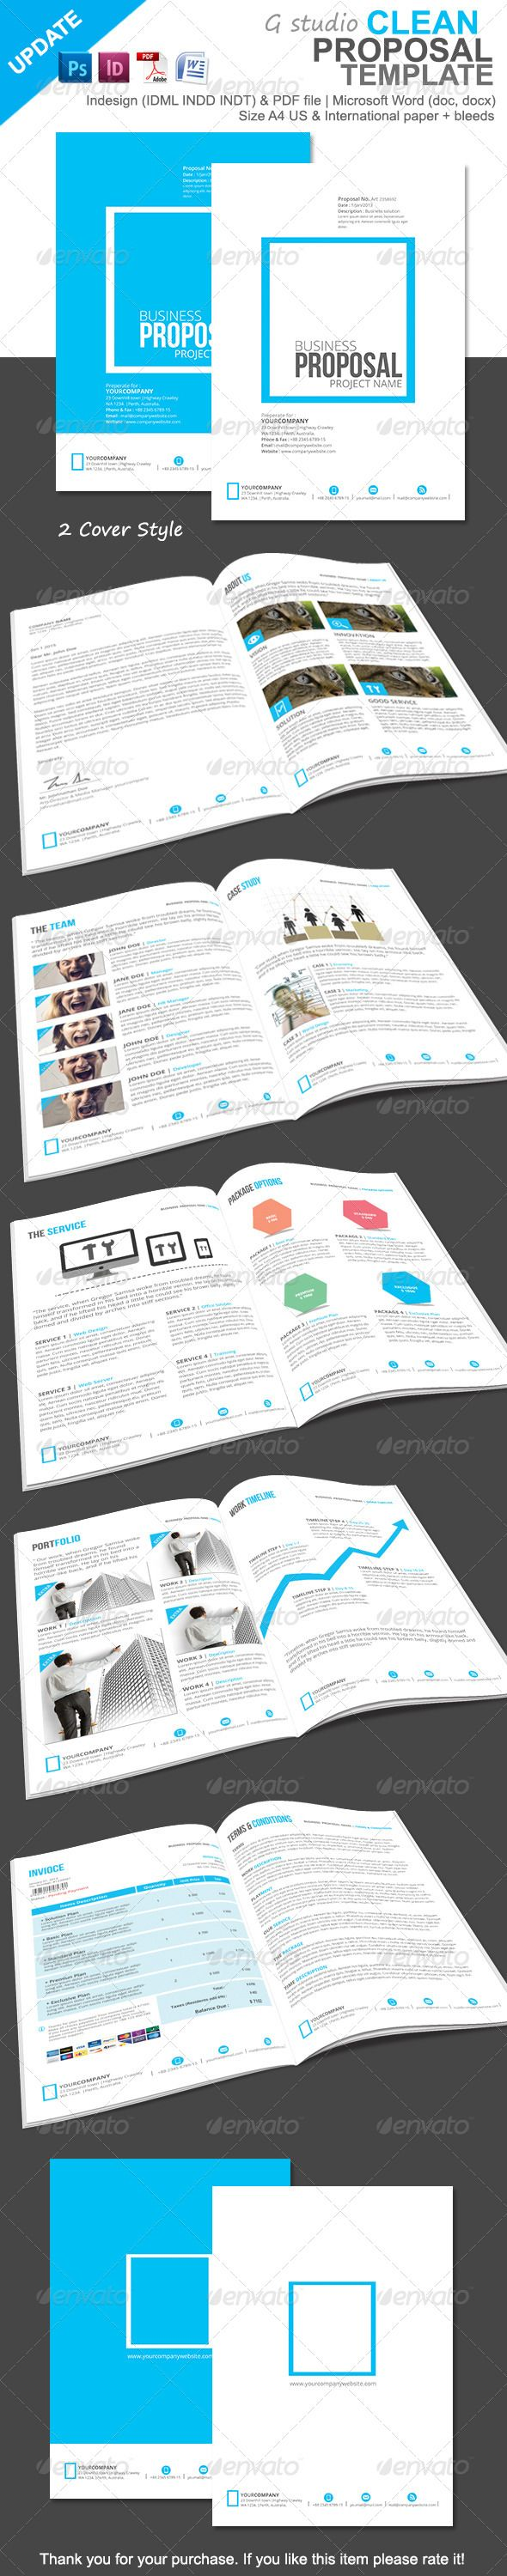 best ideas about s proposal report design gstudio clean proposal template